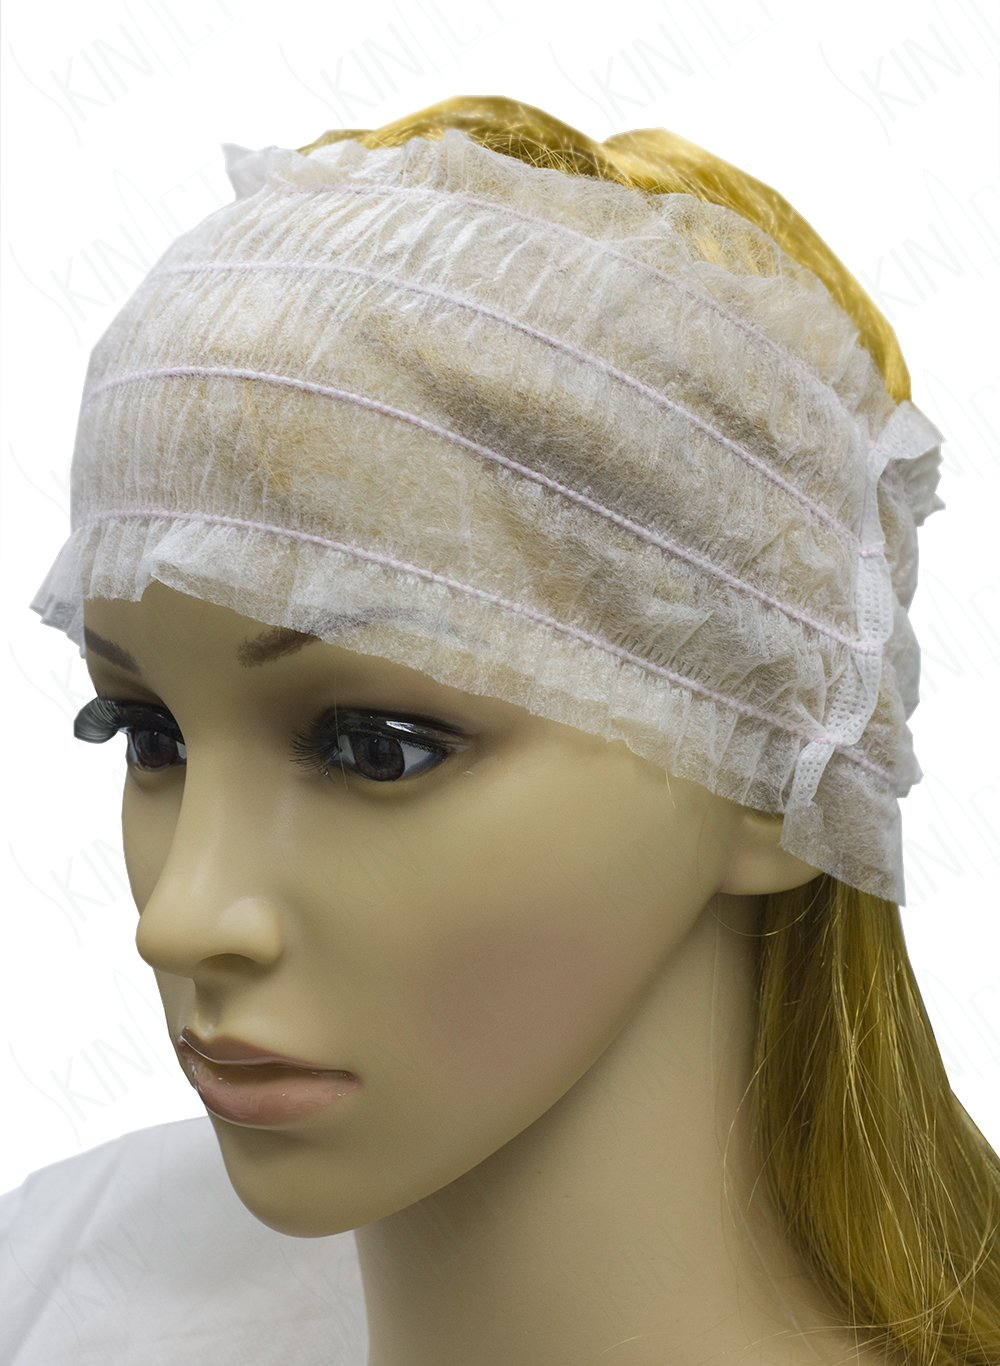 Skin Act Disposable Headband Disposable Stretch Headband White For Salon & Spa. Fits all Head Sizes in 100, 500, 1000 counts